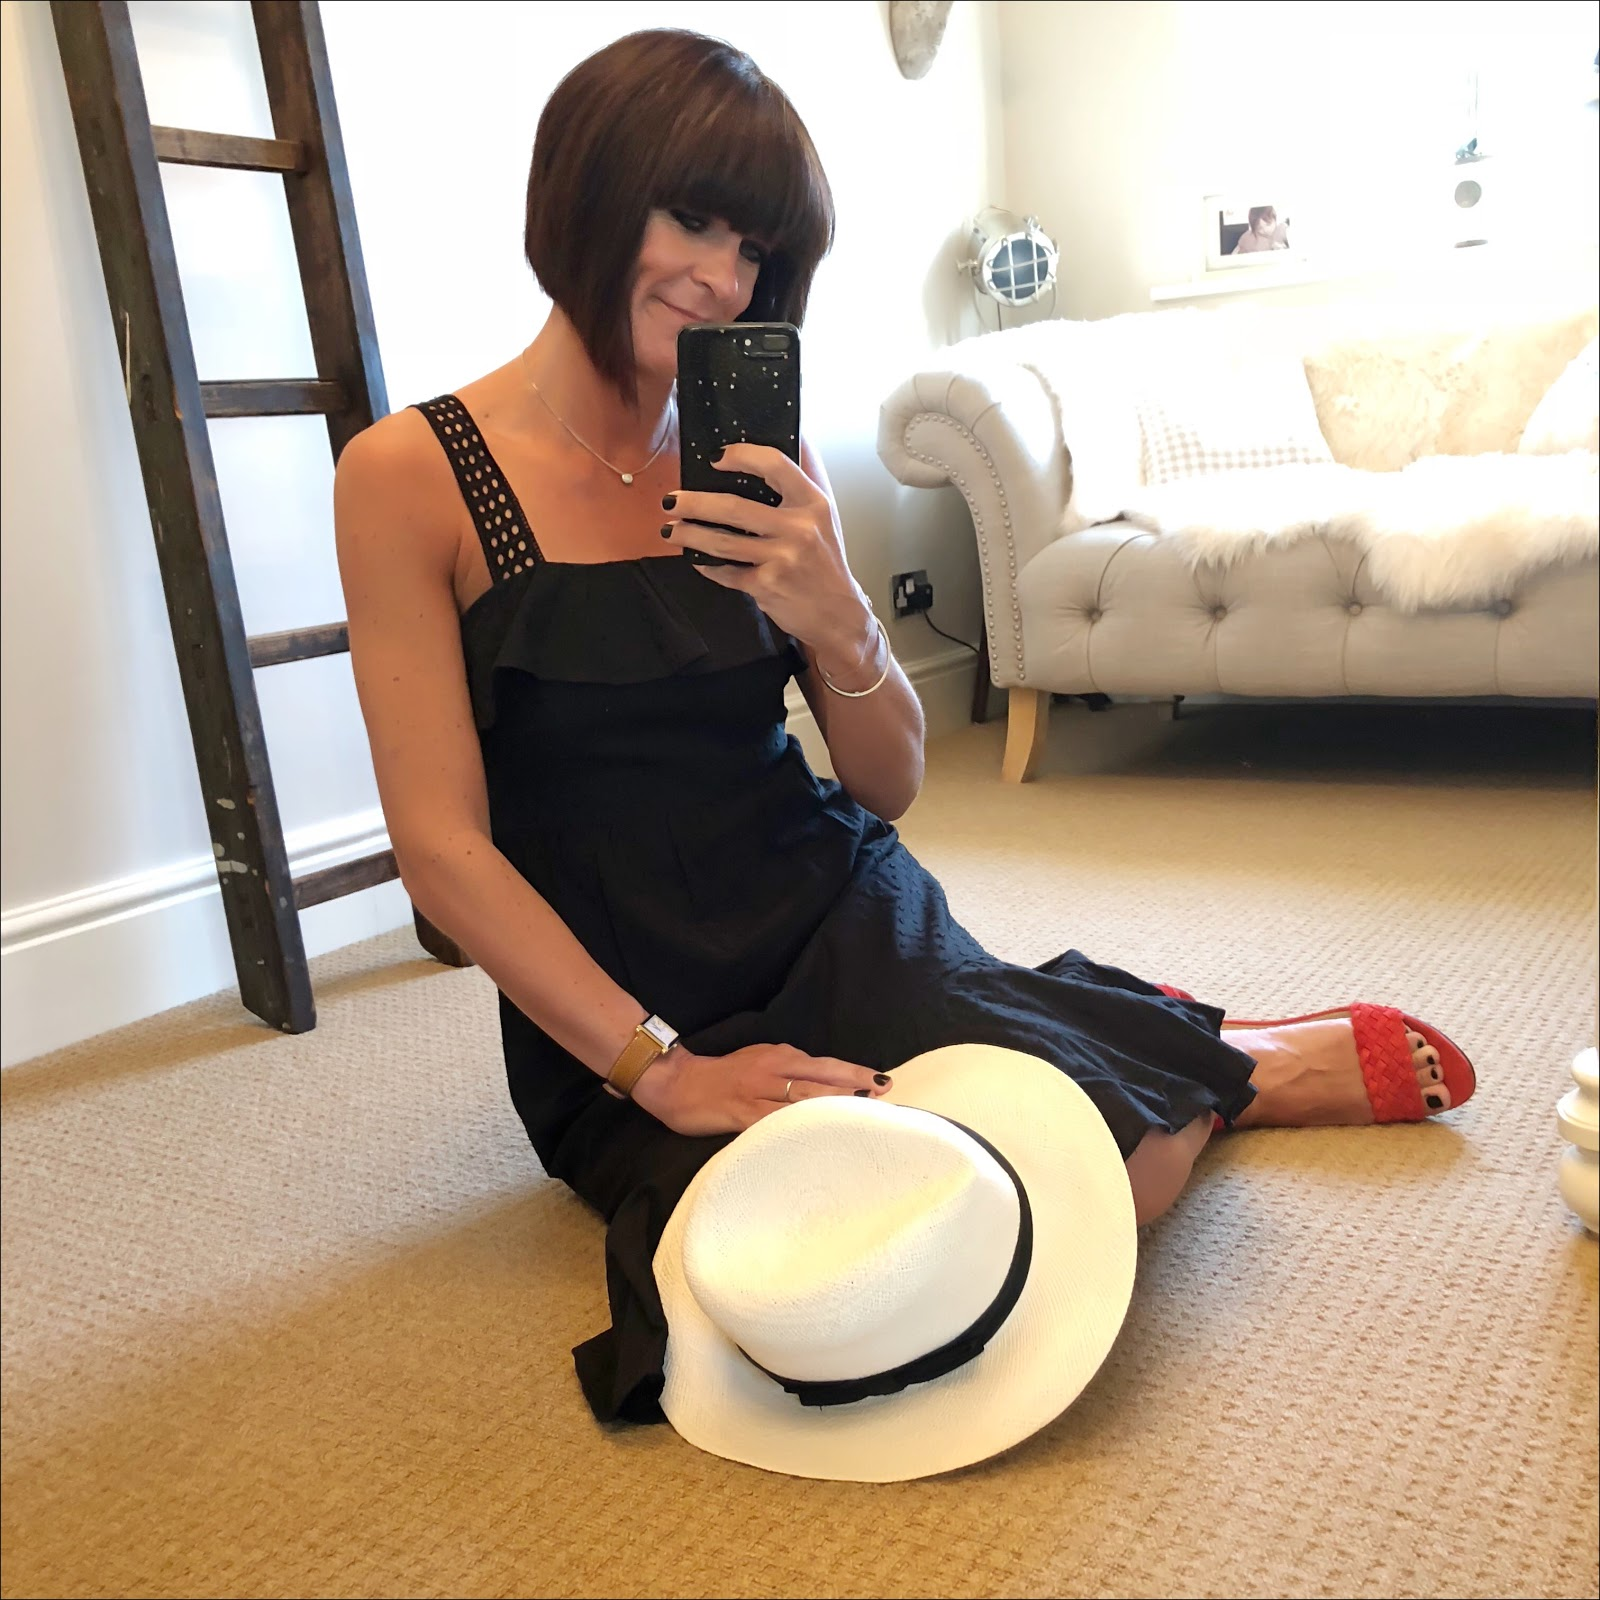 My midlife fashion, marks and spencer hand woven panama straw hat, j crew dobby sundress, j crew suede woven wedge heel sandals